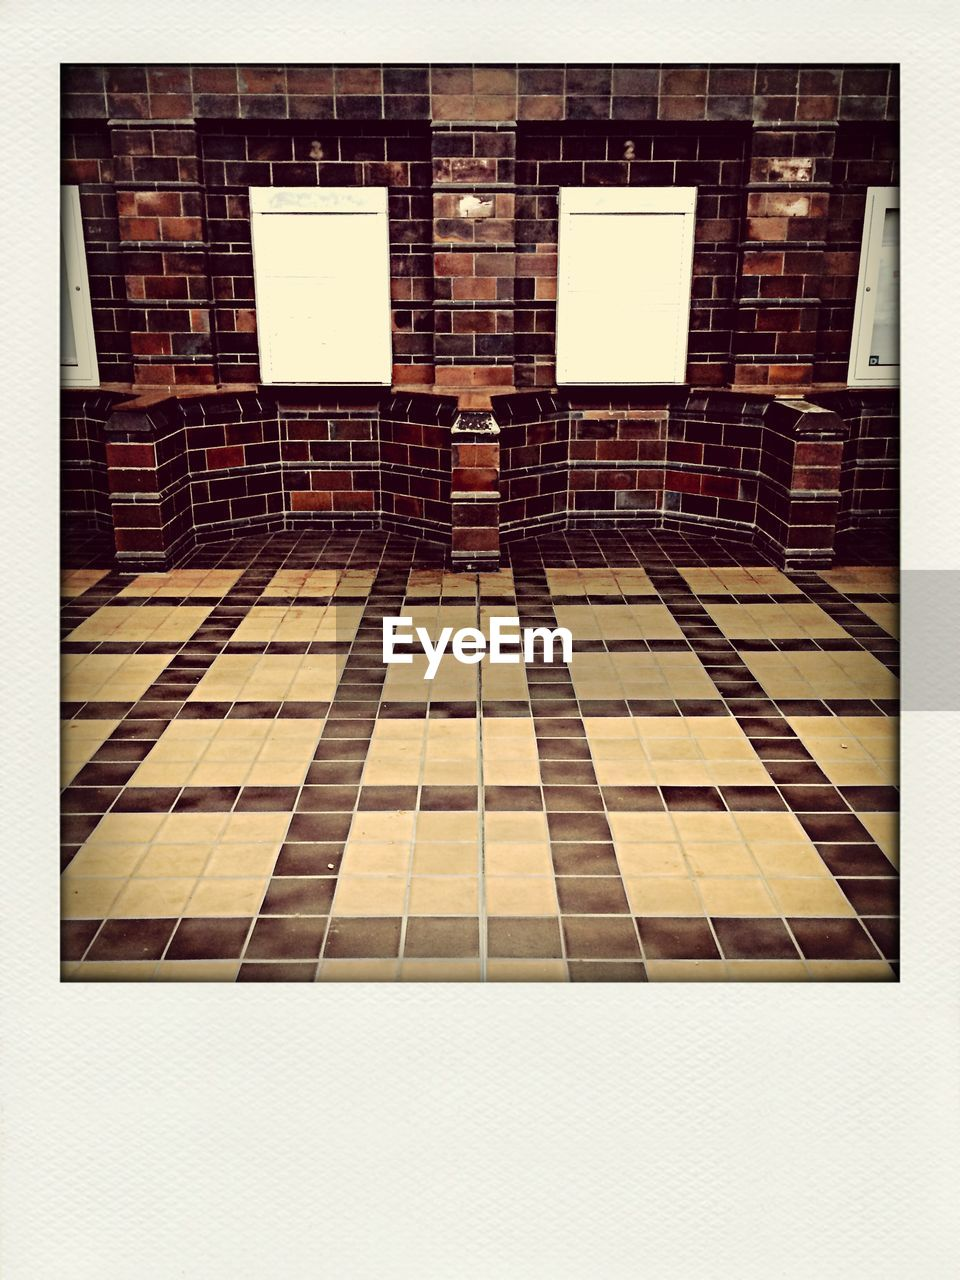 Tiled floor against brick wall